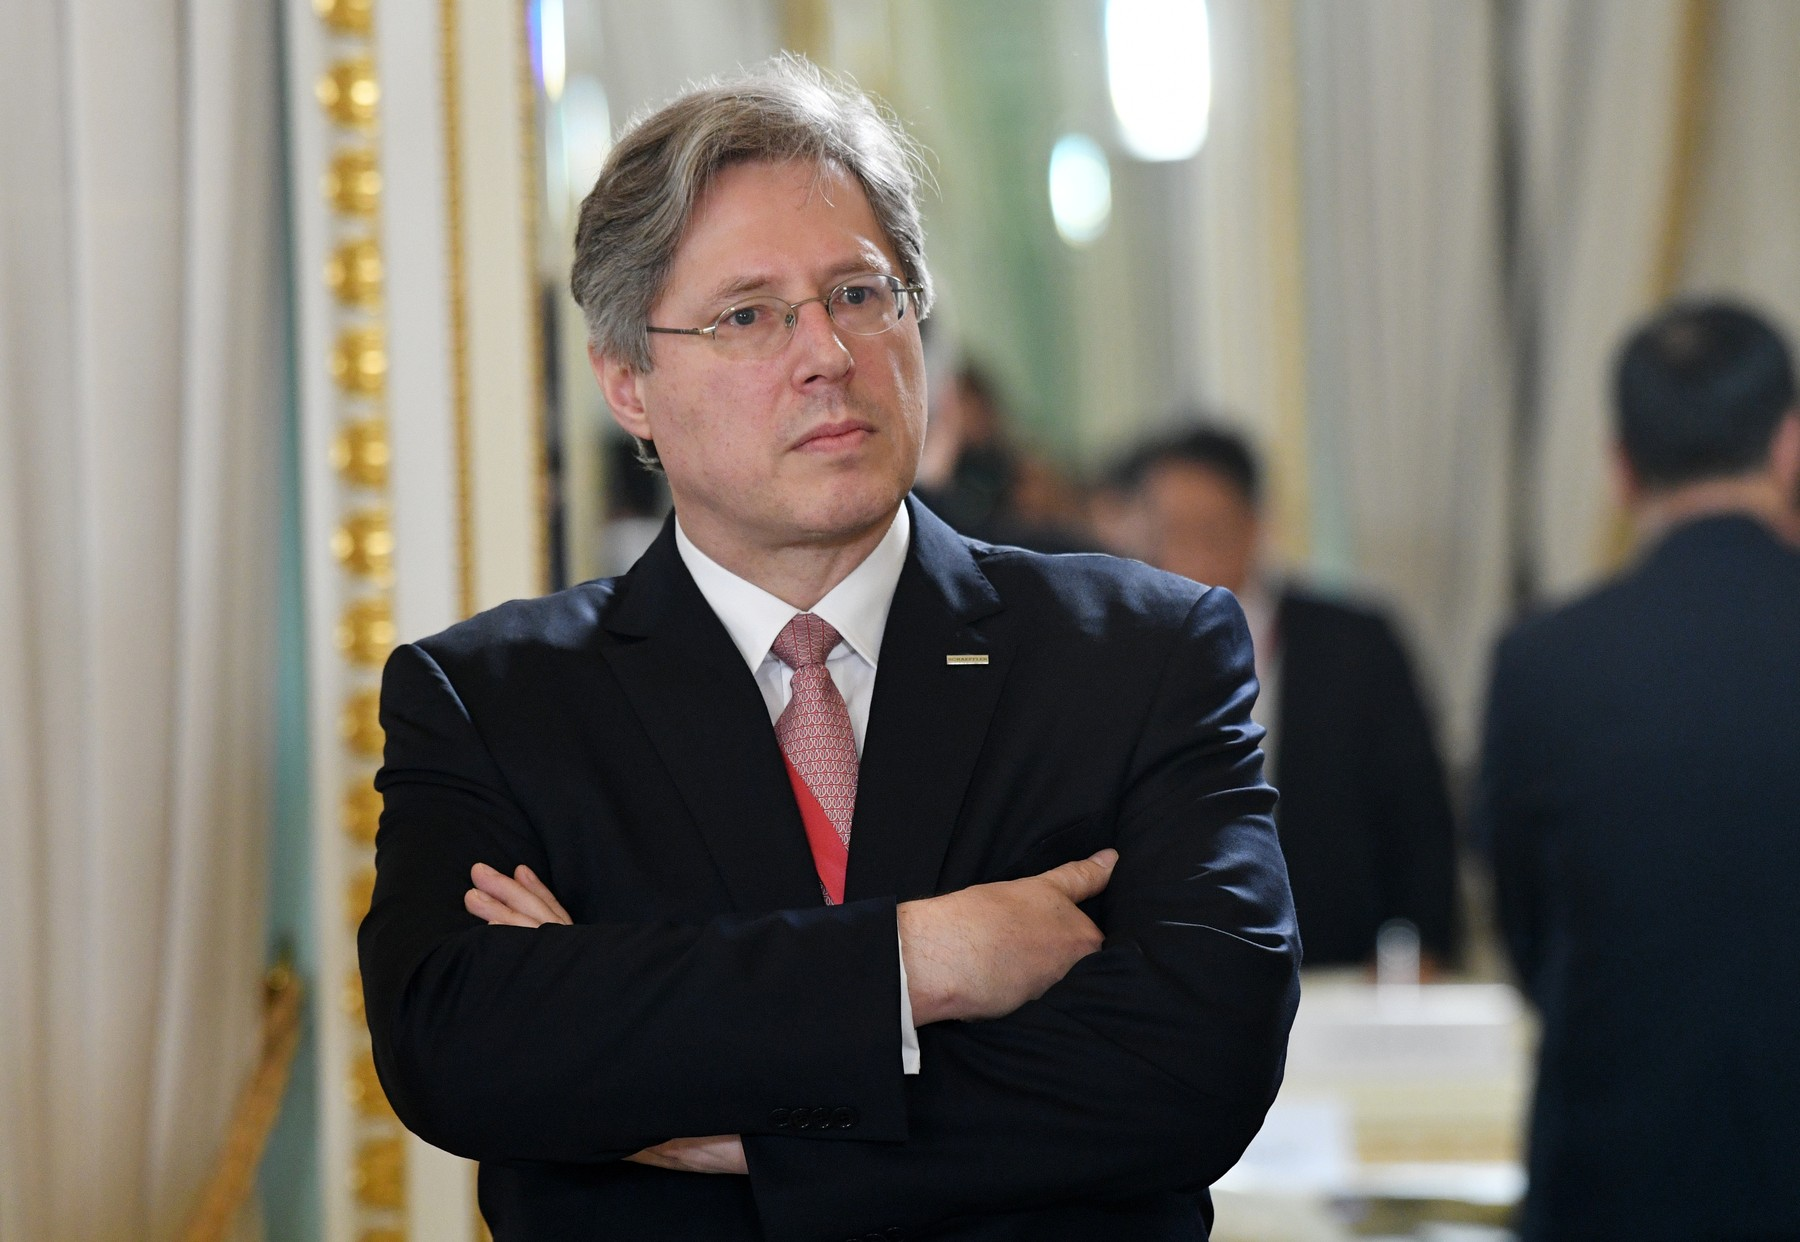 5906458 06.06.2019 Schaeffler Holding owner Georg Schaeffler waits before the meeting of Russian President Vladimir Putin with investors on the outskirts of the St. Petersburg International Economic Forum (SPIEF) in St. Petersburg, Russia., Image: 443940244, License: Rights-managed, Restrictions: , Model Release: no, Credit line: Grigory Sysoev / Sputnik / Profimedia